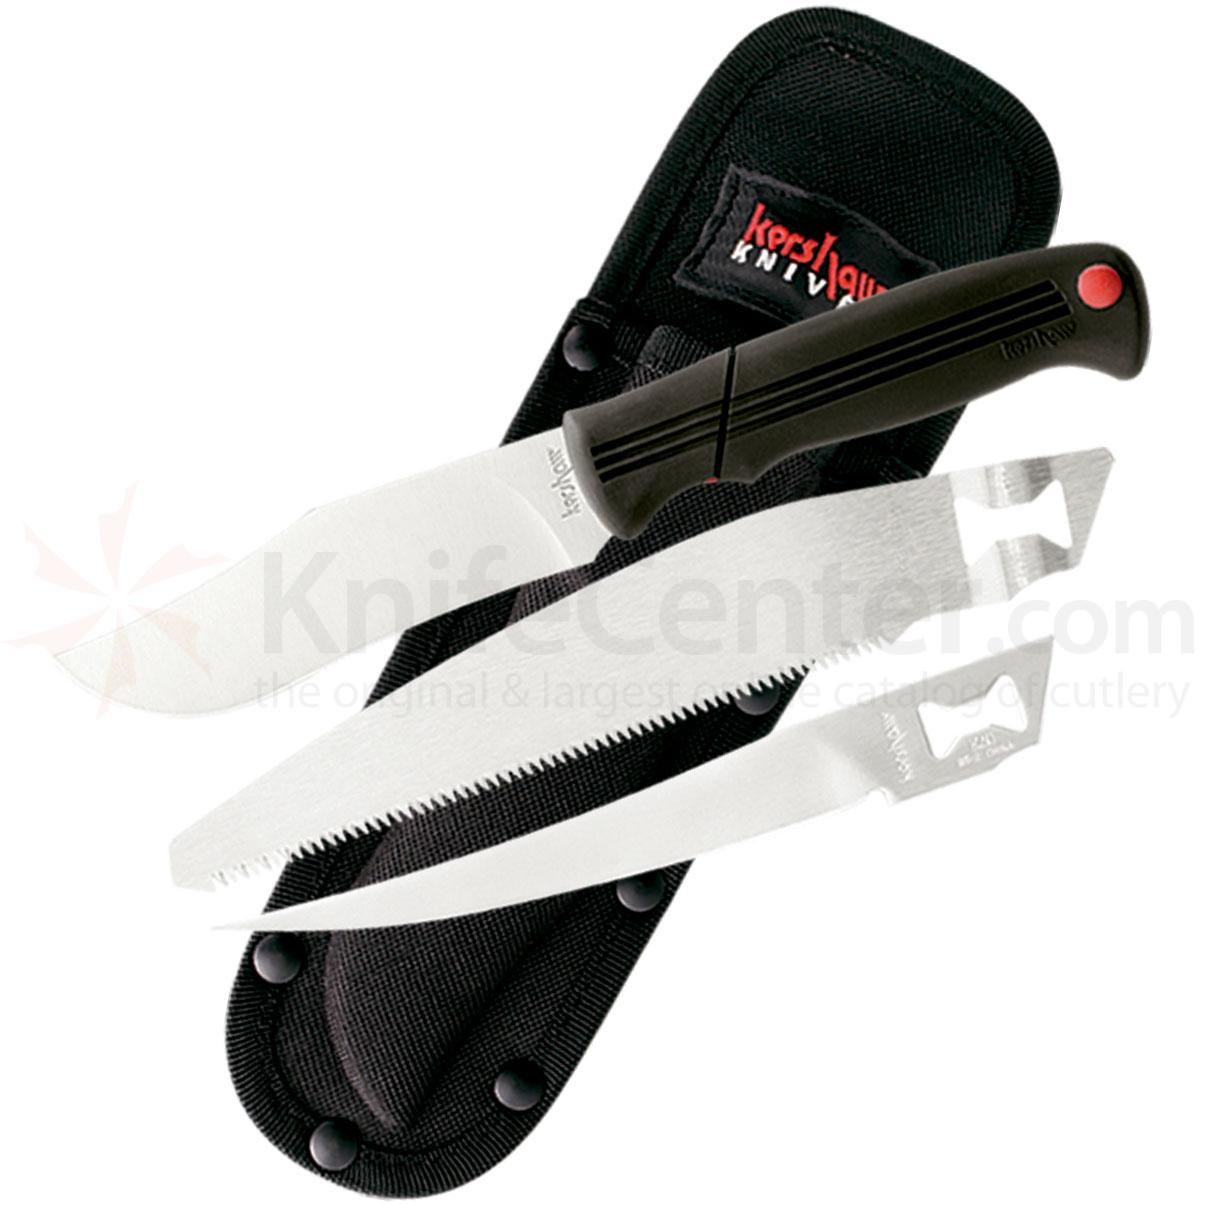 Kershaw 1095SBT Sportsman's Blade Trader, 1 Handle with 3 Inerchangeable Blades